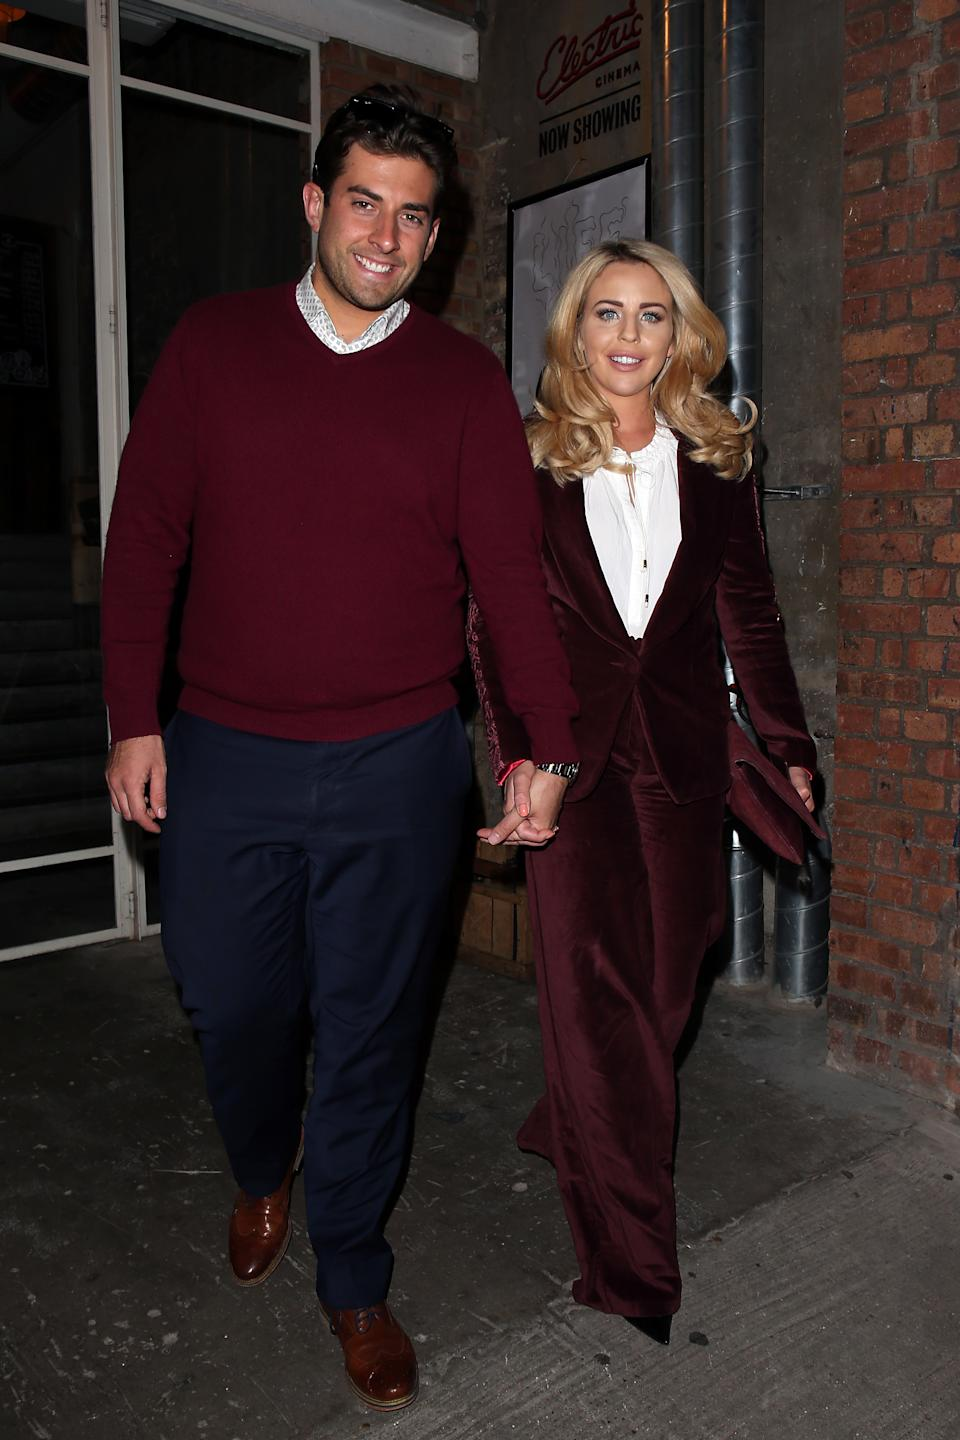 LONDON, ENGLAND - OCTOBER 01:  Lydia Bright and James Argent leaving The Intern - Special screening hosted by Lydia Bright at The Electric Cinema Shoreditch on October 1, 2015 in London, England.  (Photo by Neil P. Mockford/Getty Images for Warner Bros.)